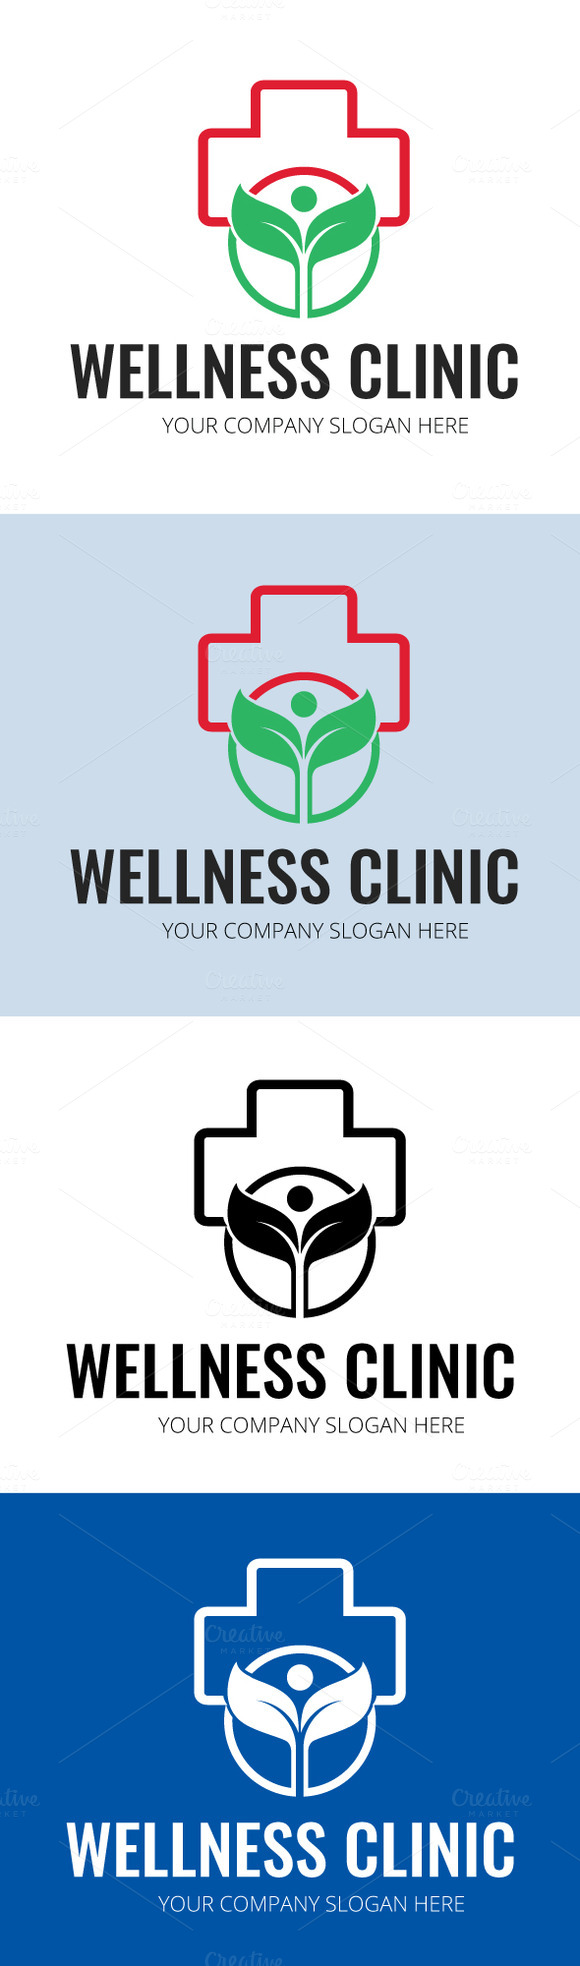 Wellness Clinic Logo Template